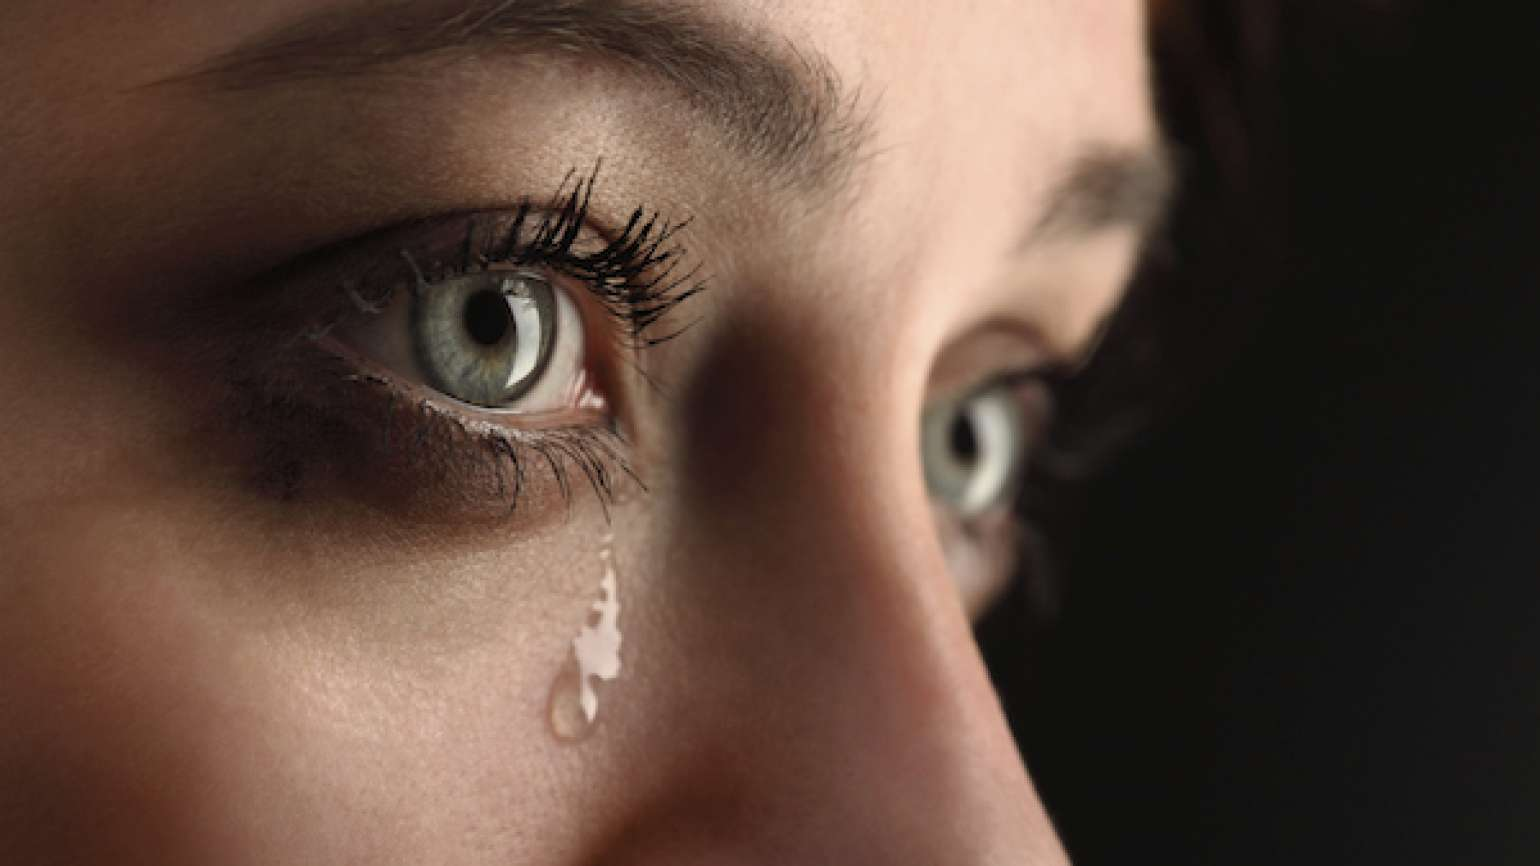 In the wake of the tragic shootings in Oregon, pray the prayer of tears.